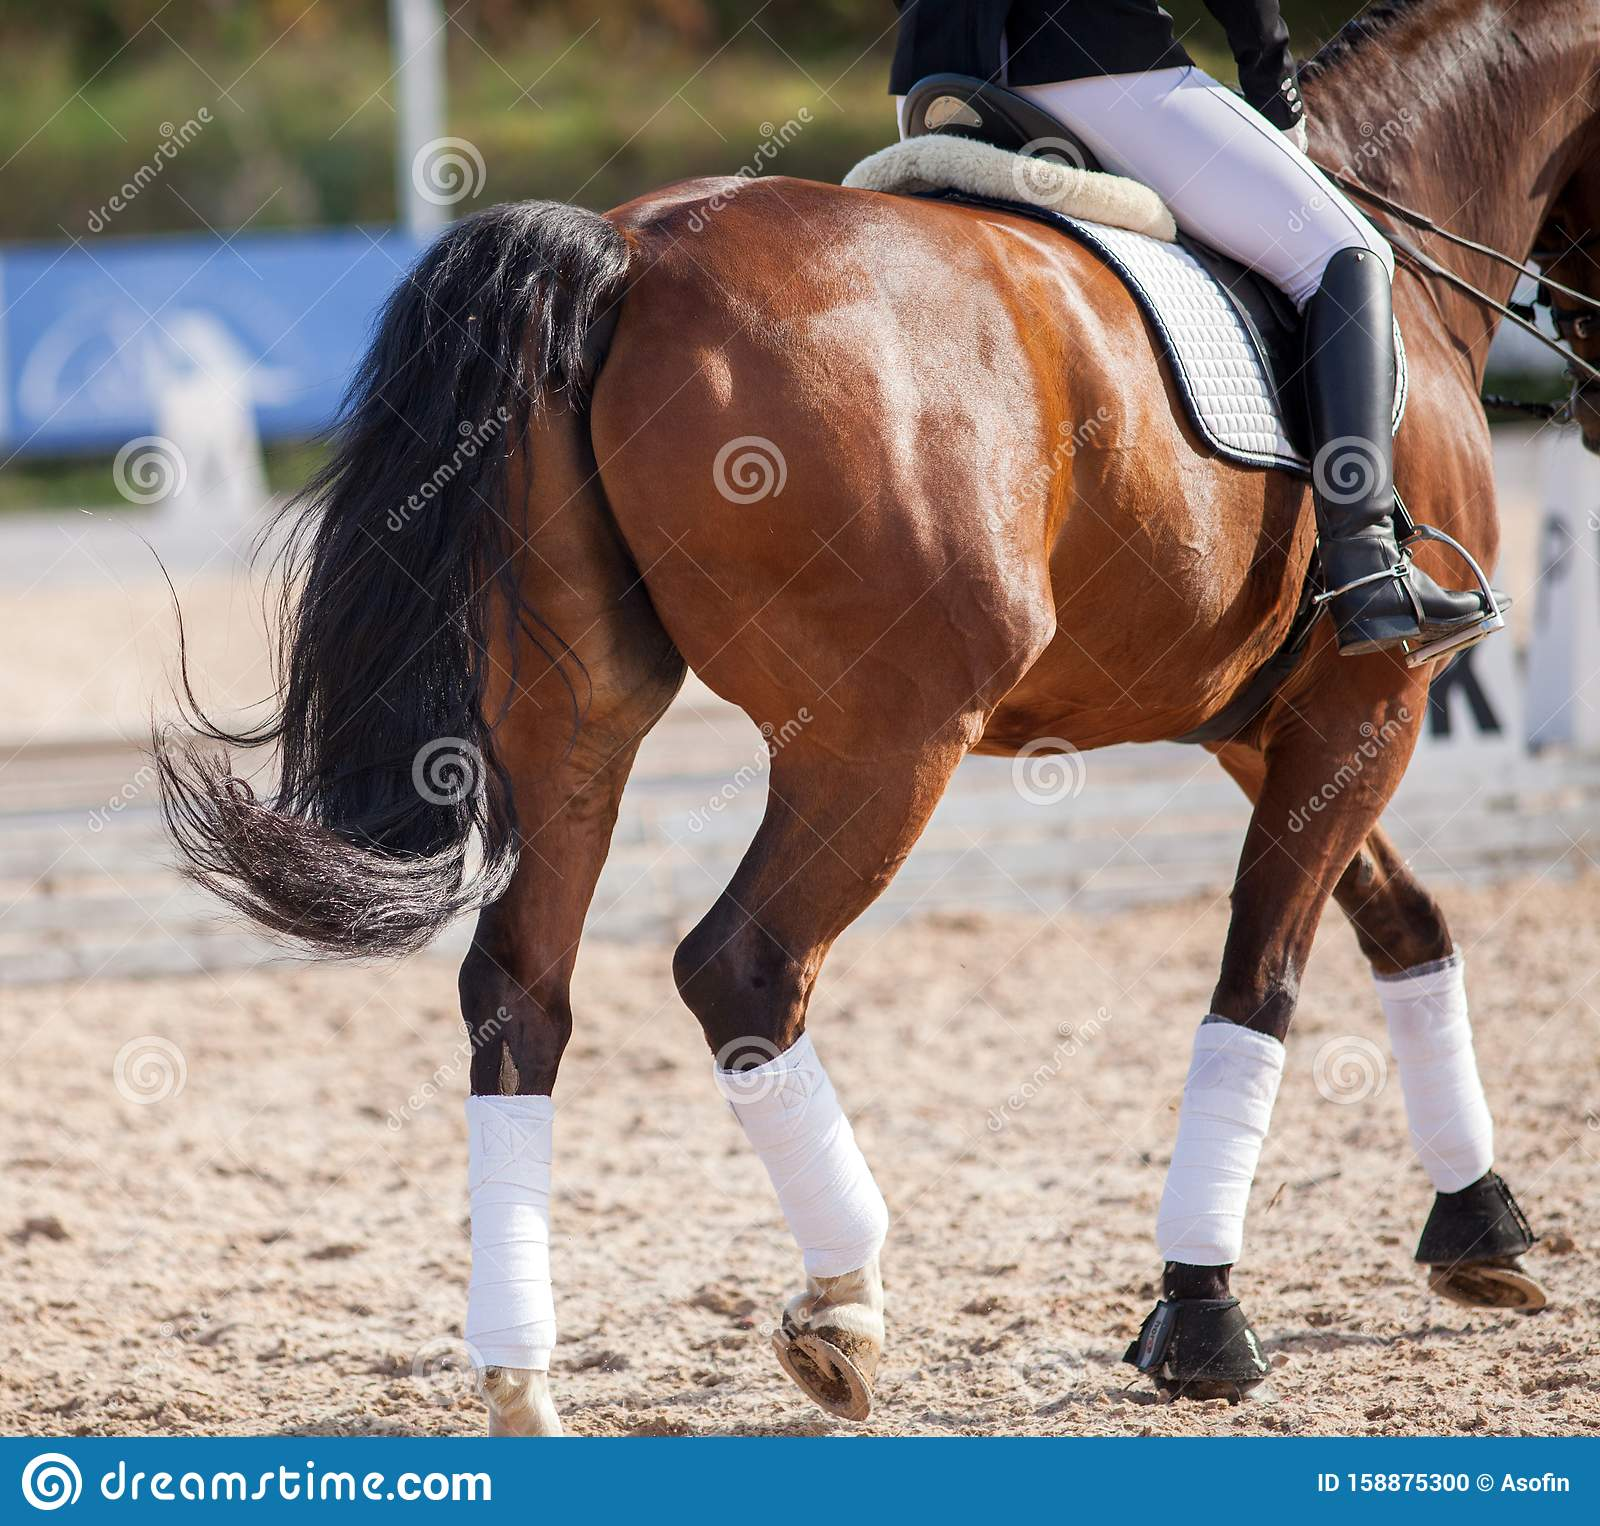 A Red Sports Horse With A Bridle And A Rider Riding With His Foot In A Boot With A Spur In A Stirrup Stock Photo Image Of Black Ride 158875300